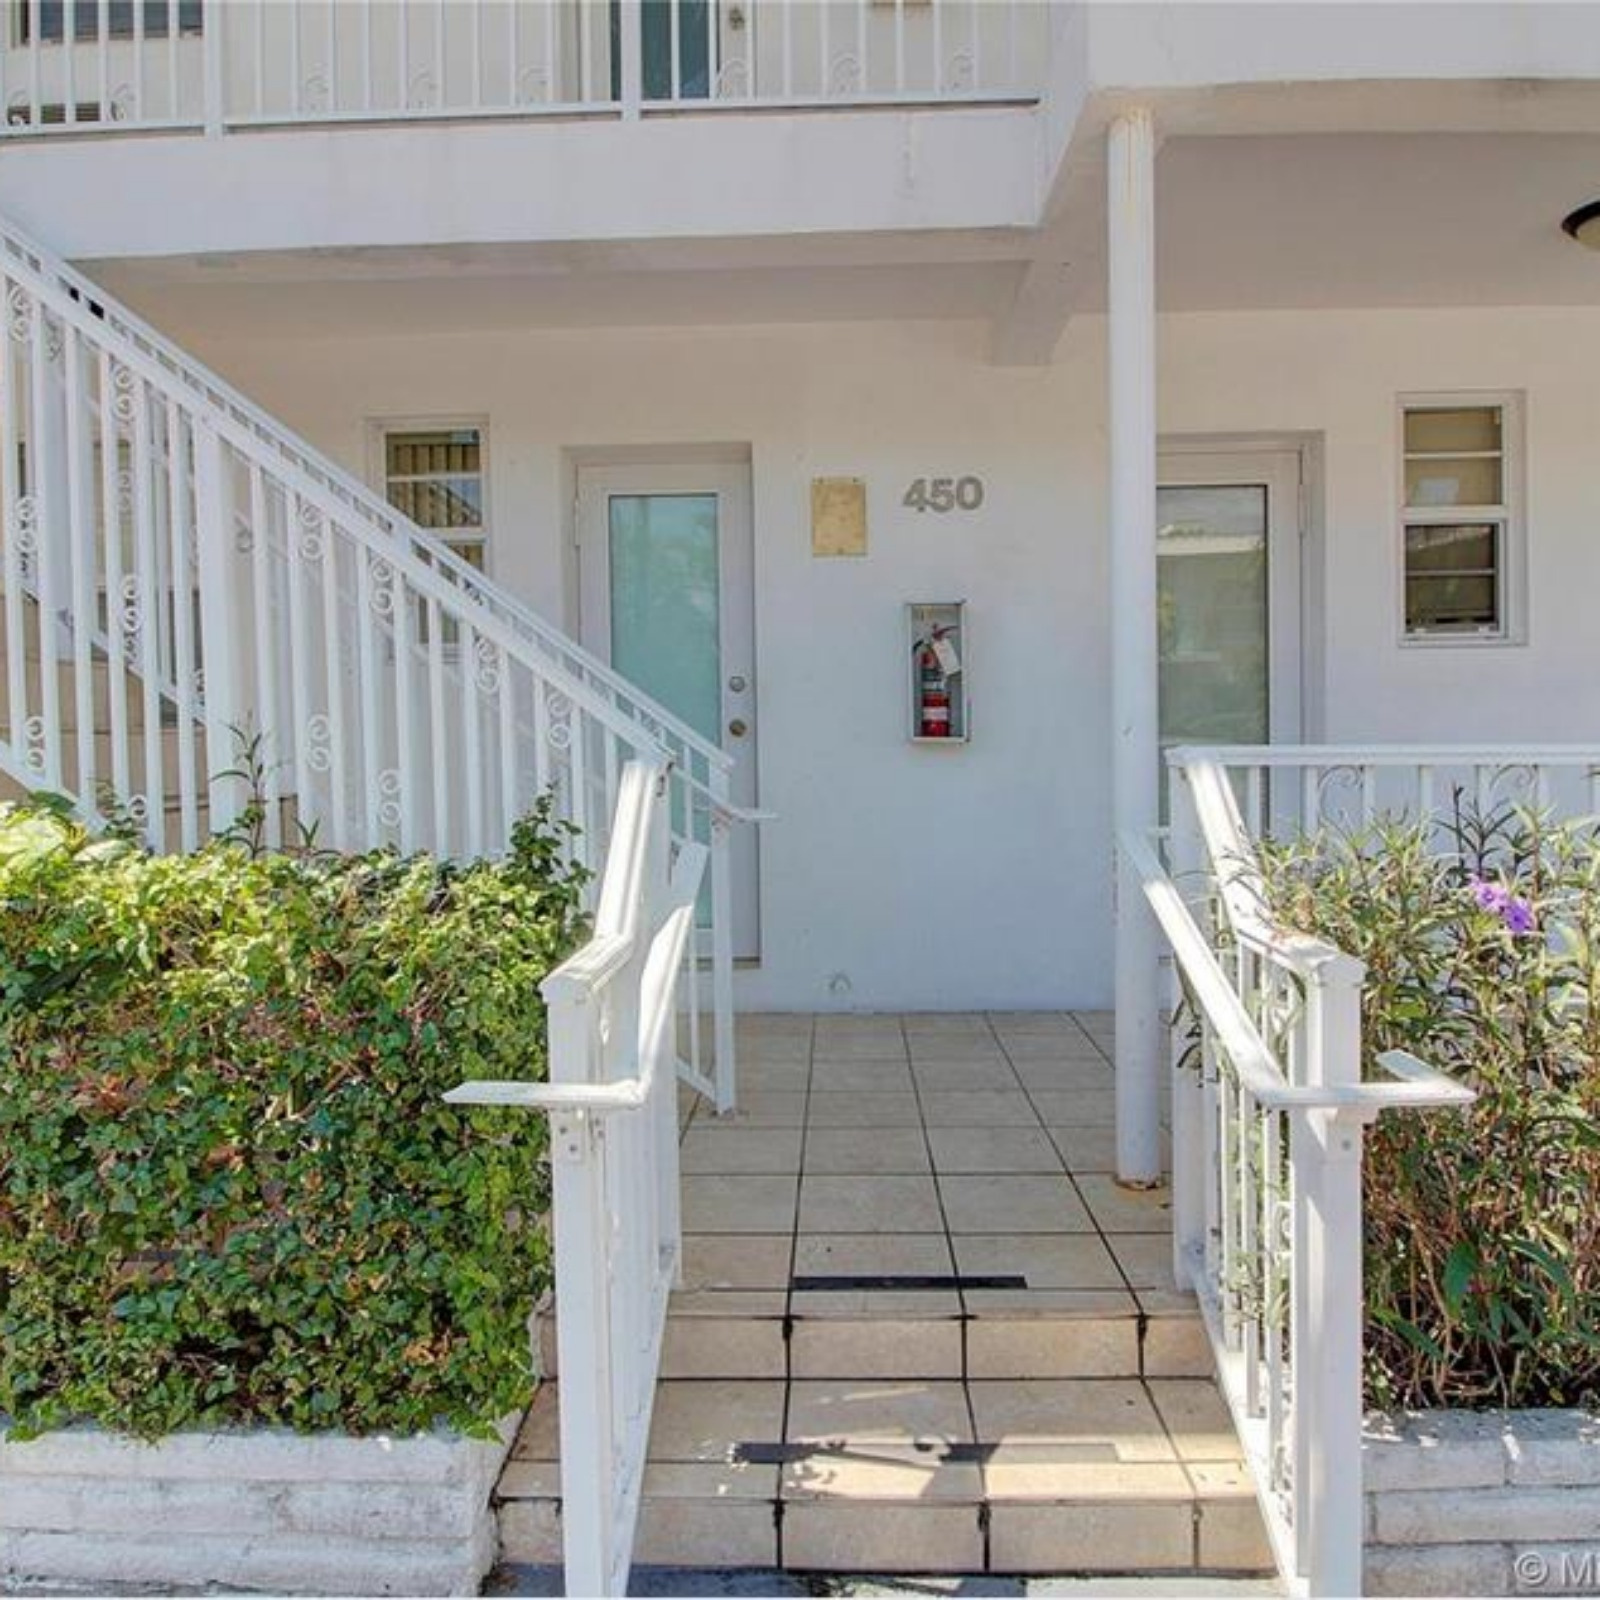 House for Sale 450 77th St Unit 6  Miami Beach FL 33141